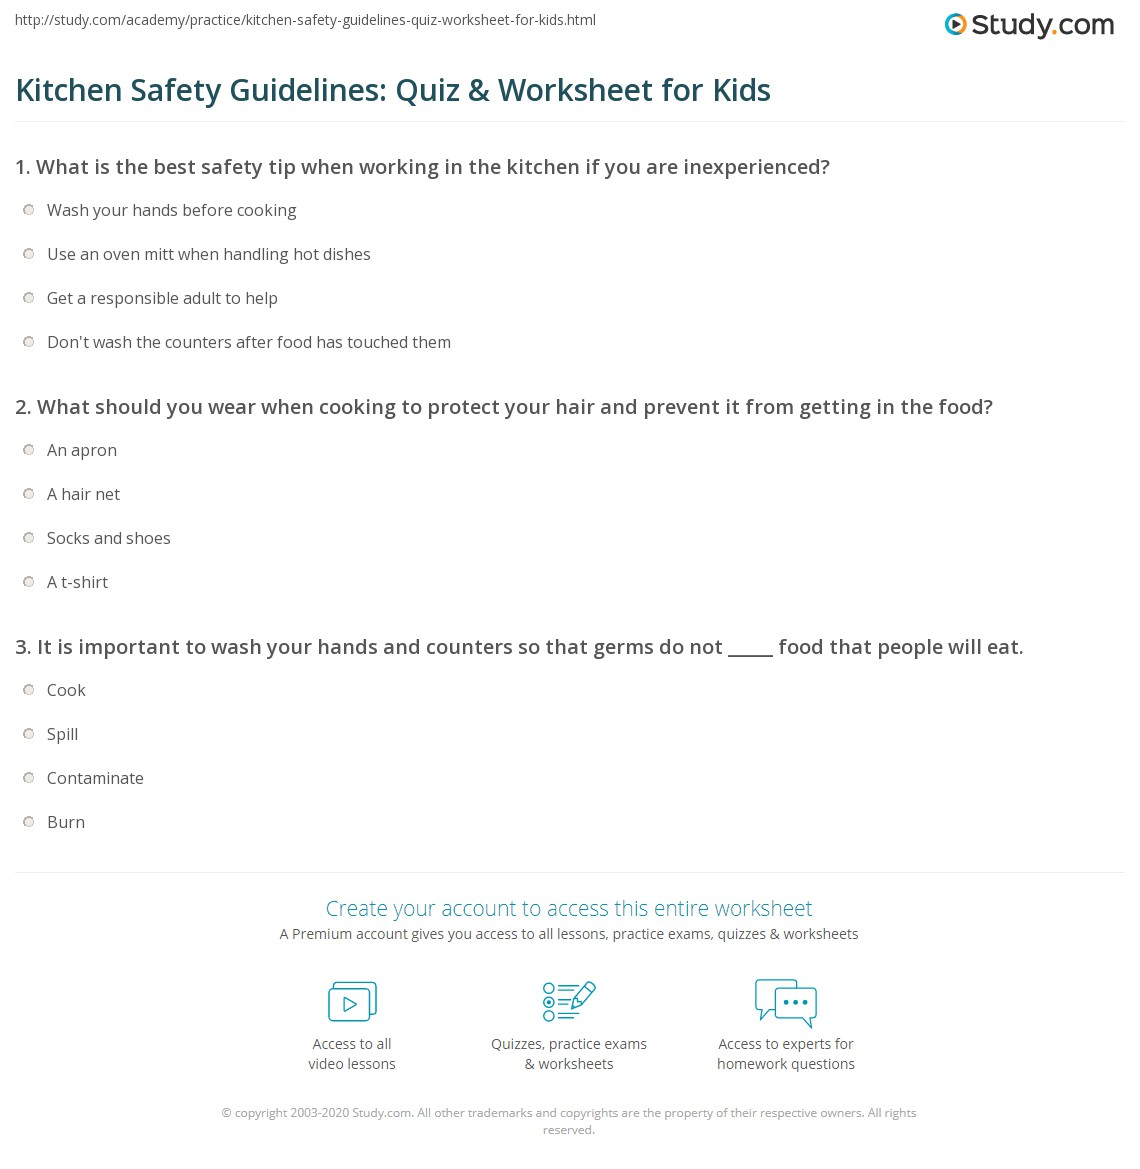 Worksheets Kitchen Safety Worksheets kitchen safety guidelines quiz worksheet for kids study com print lesson rules tips worksheet